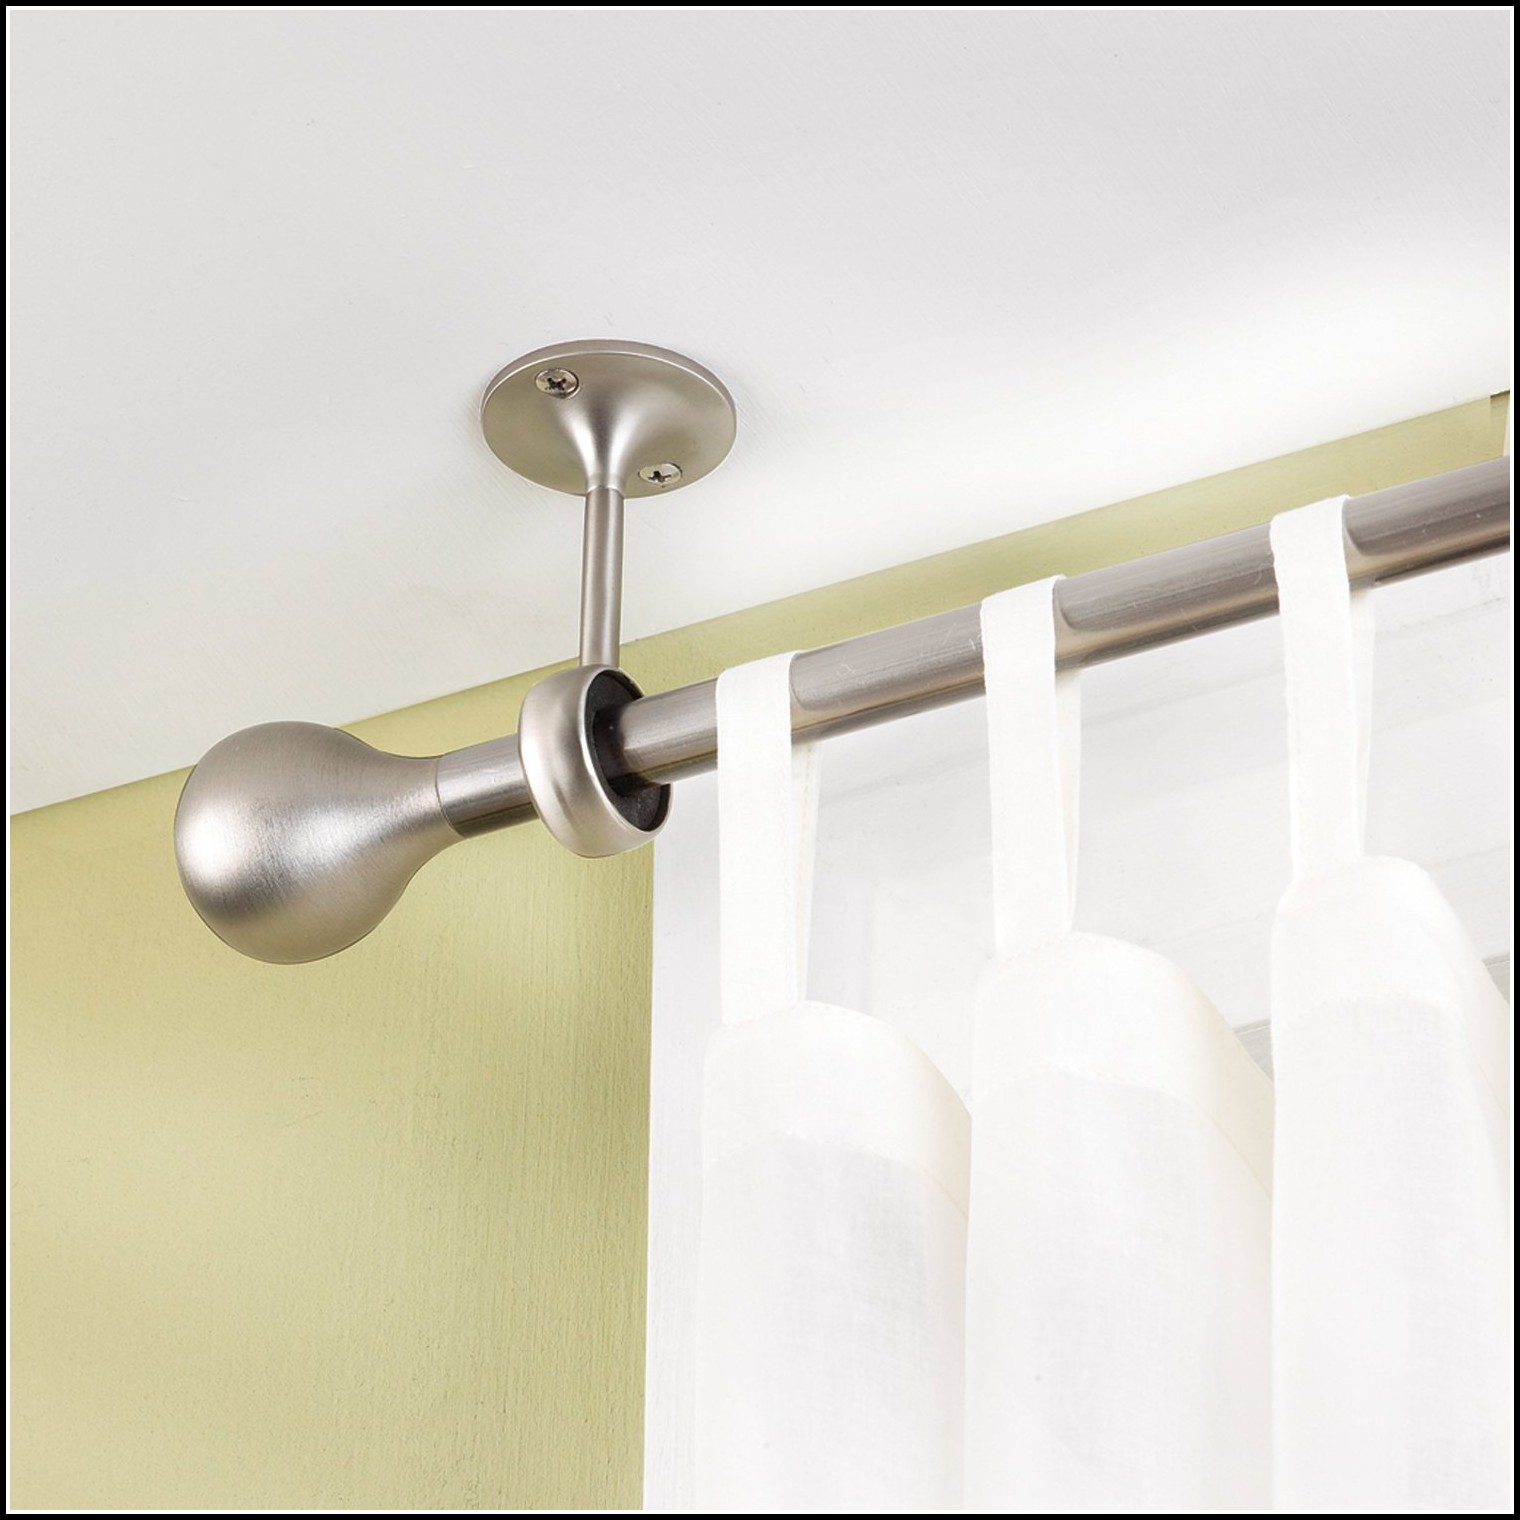 Ceiling Mounted Curtain Rods